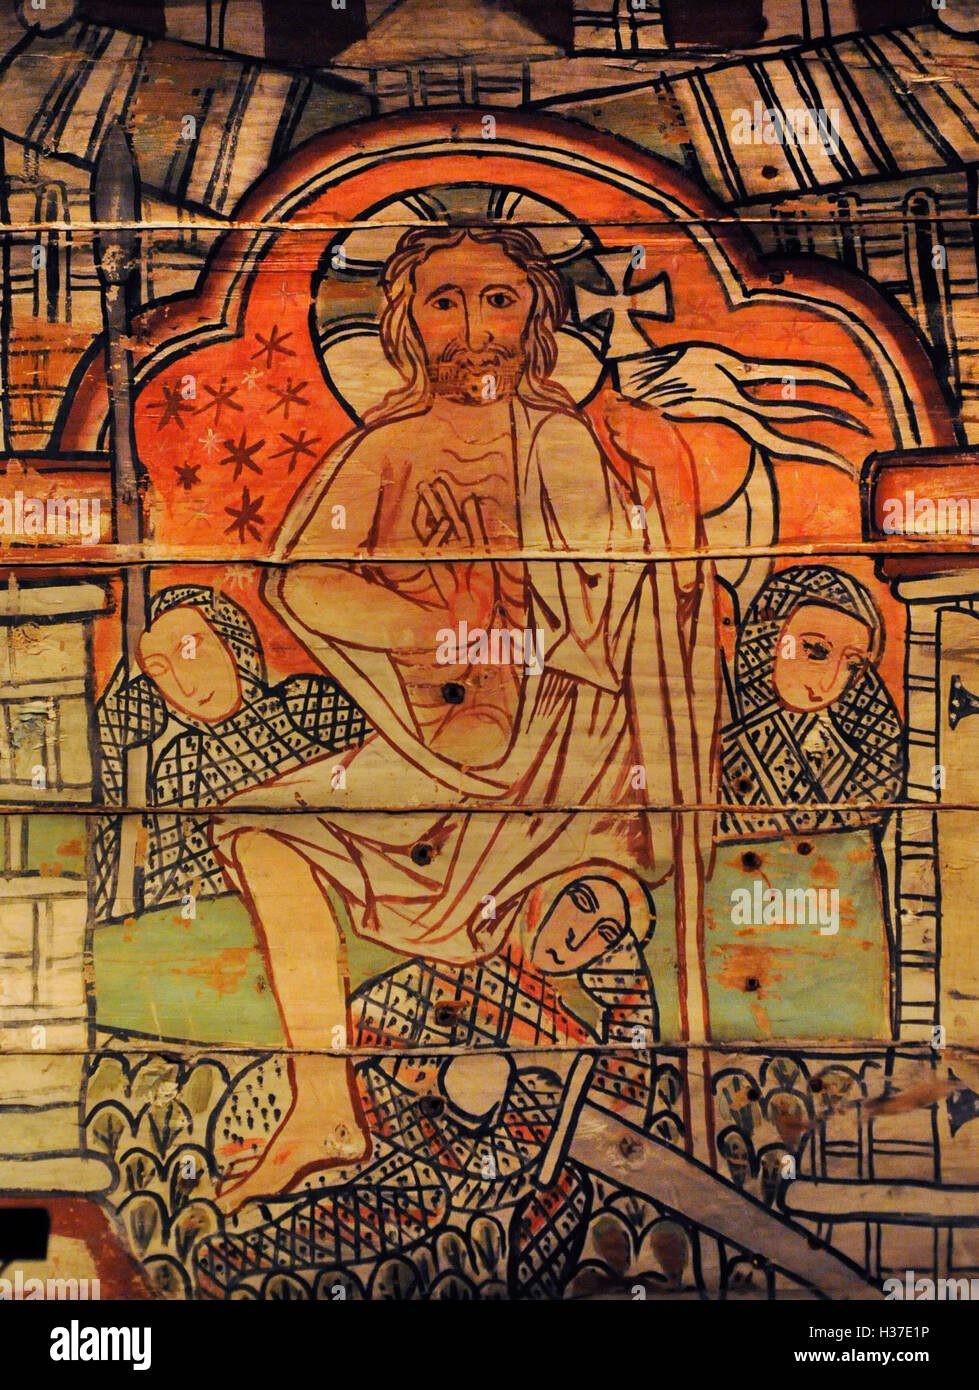 Norway. Al, Hallingdal. Painting of stave church. Medieval. 13th century. Life of Christ. Resurrection. Historical - Stock Image